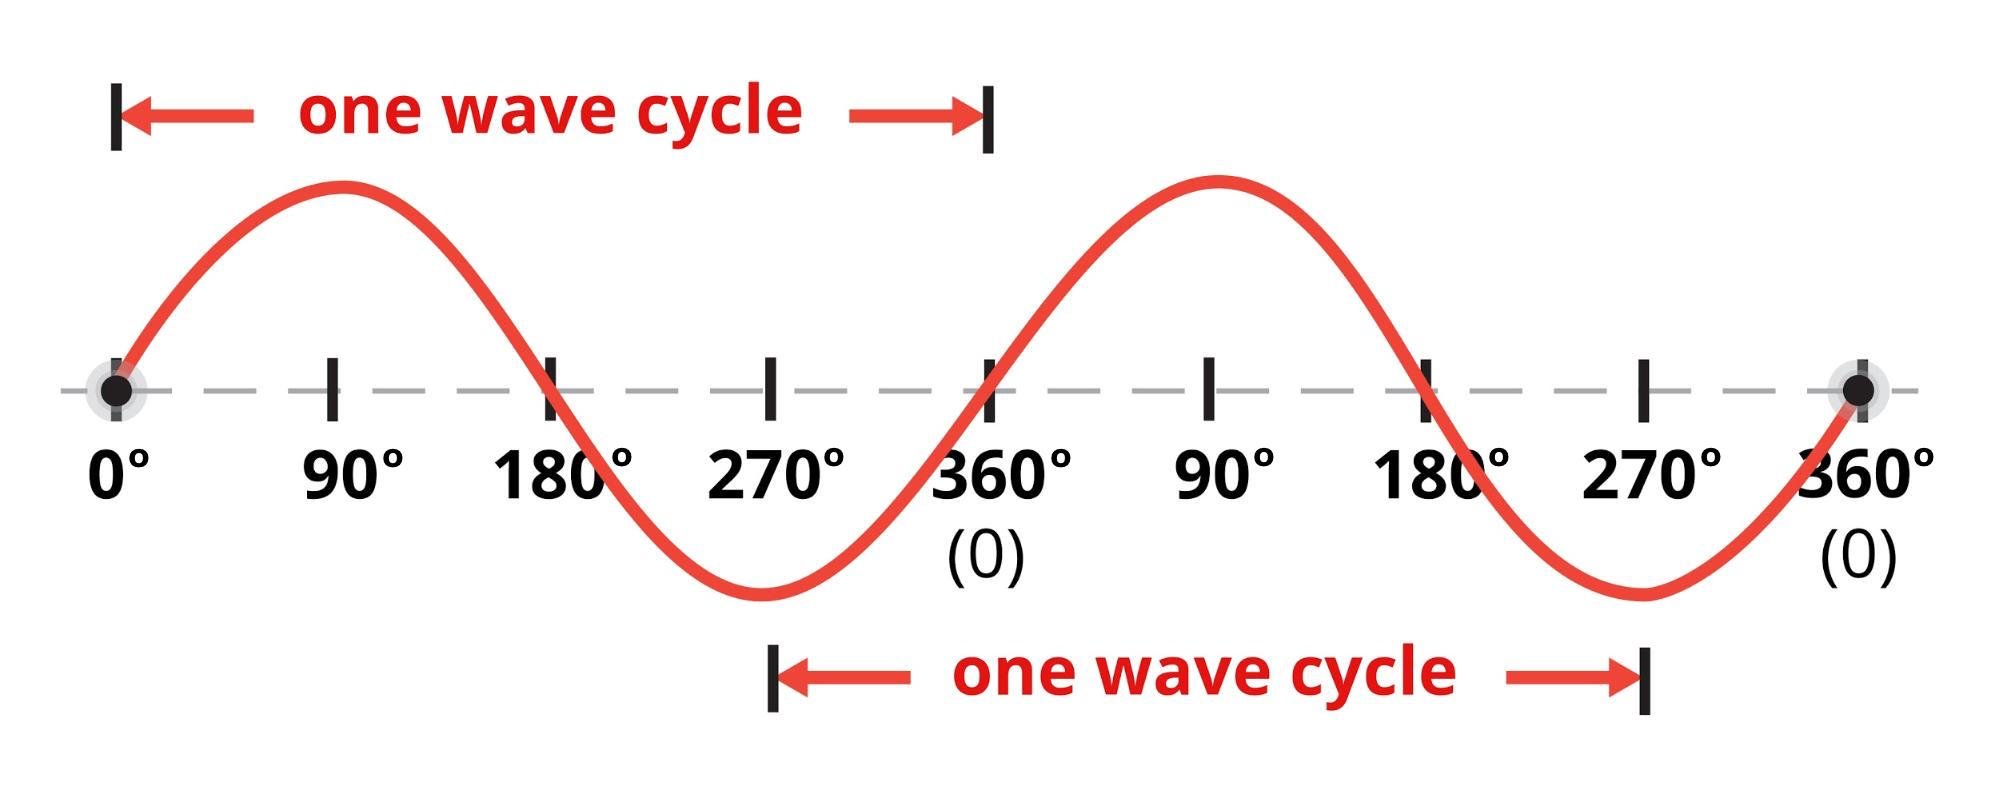 A sine wave representing the varying amplitude of an AC voltage or current.